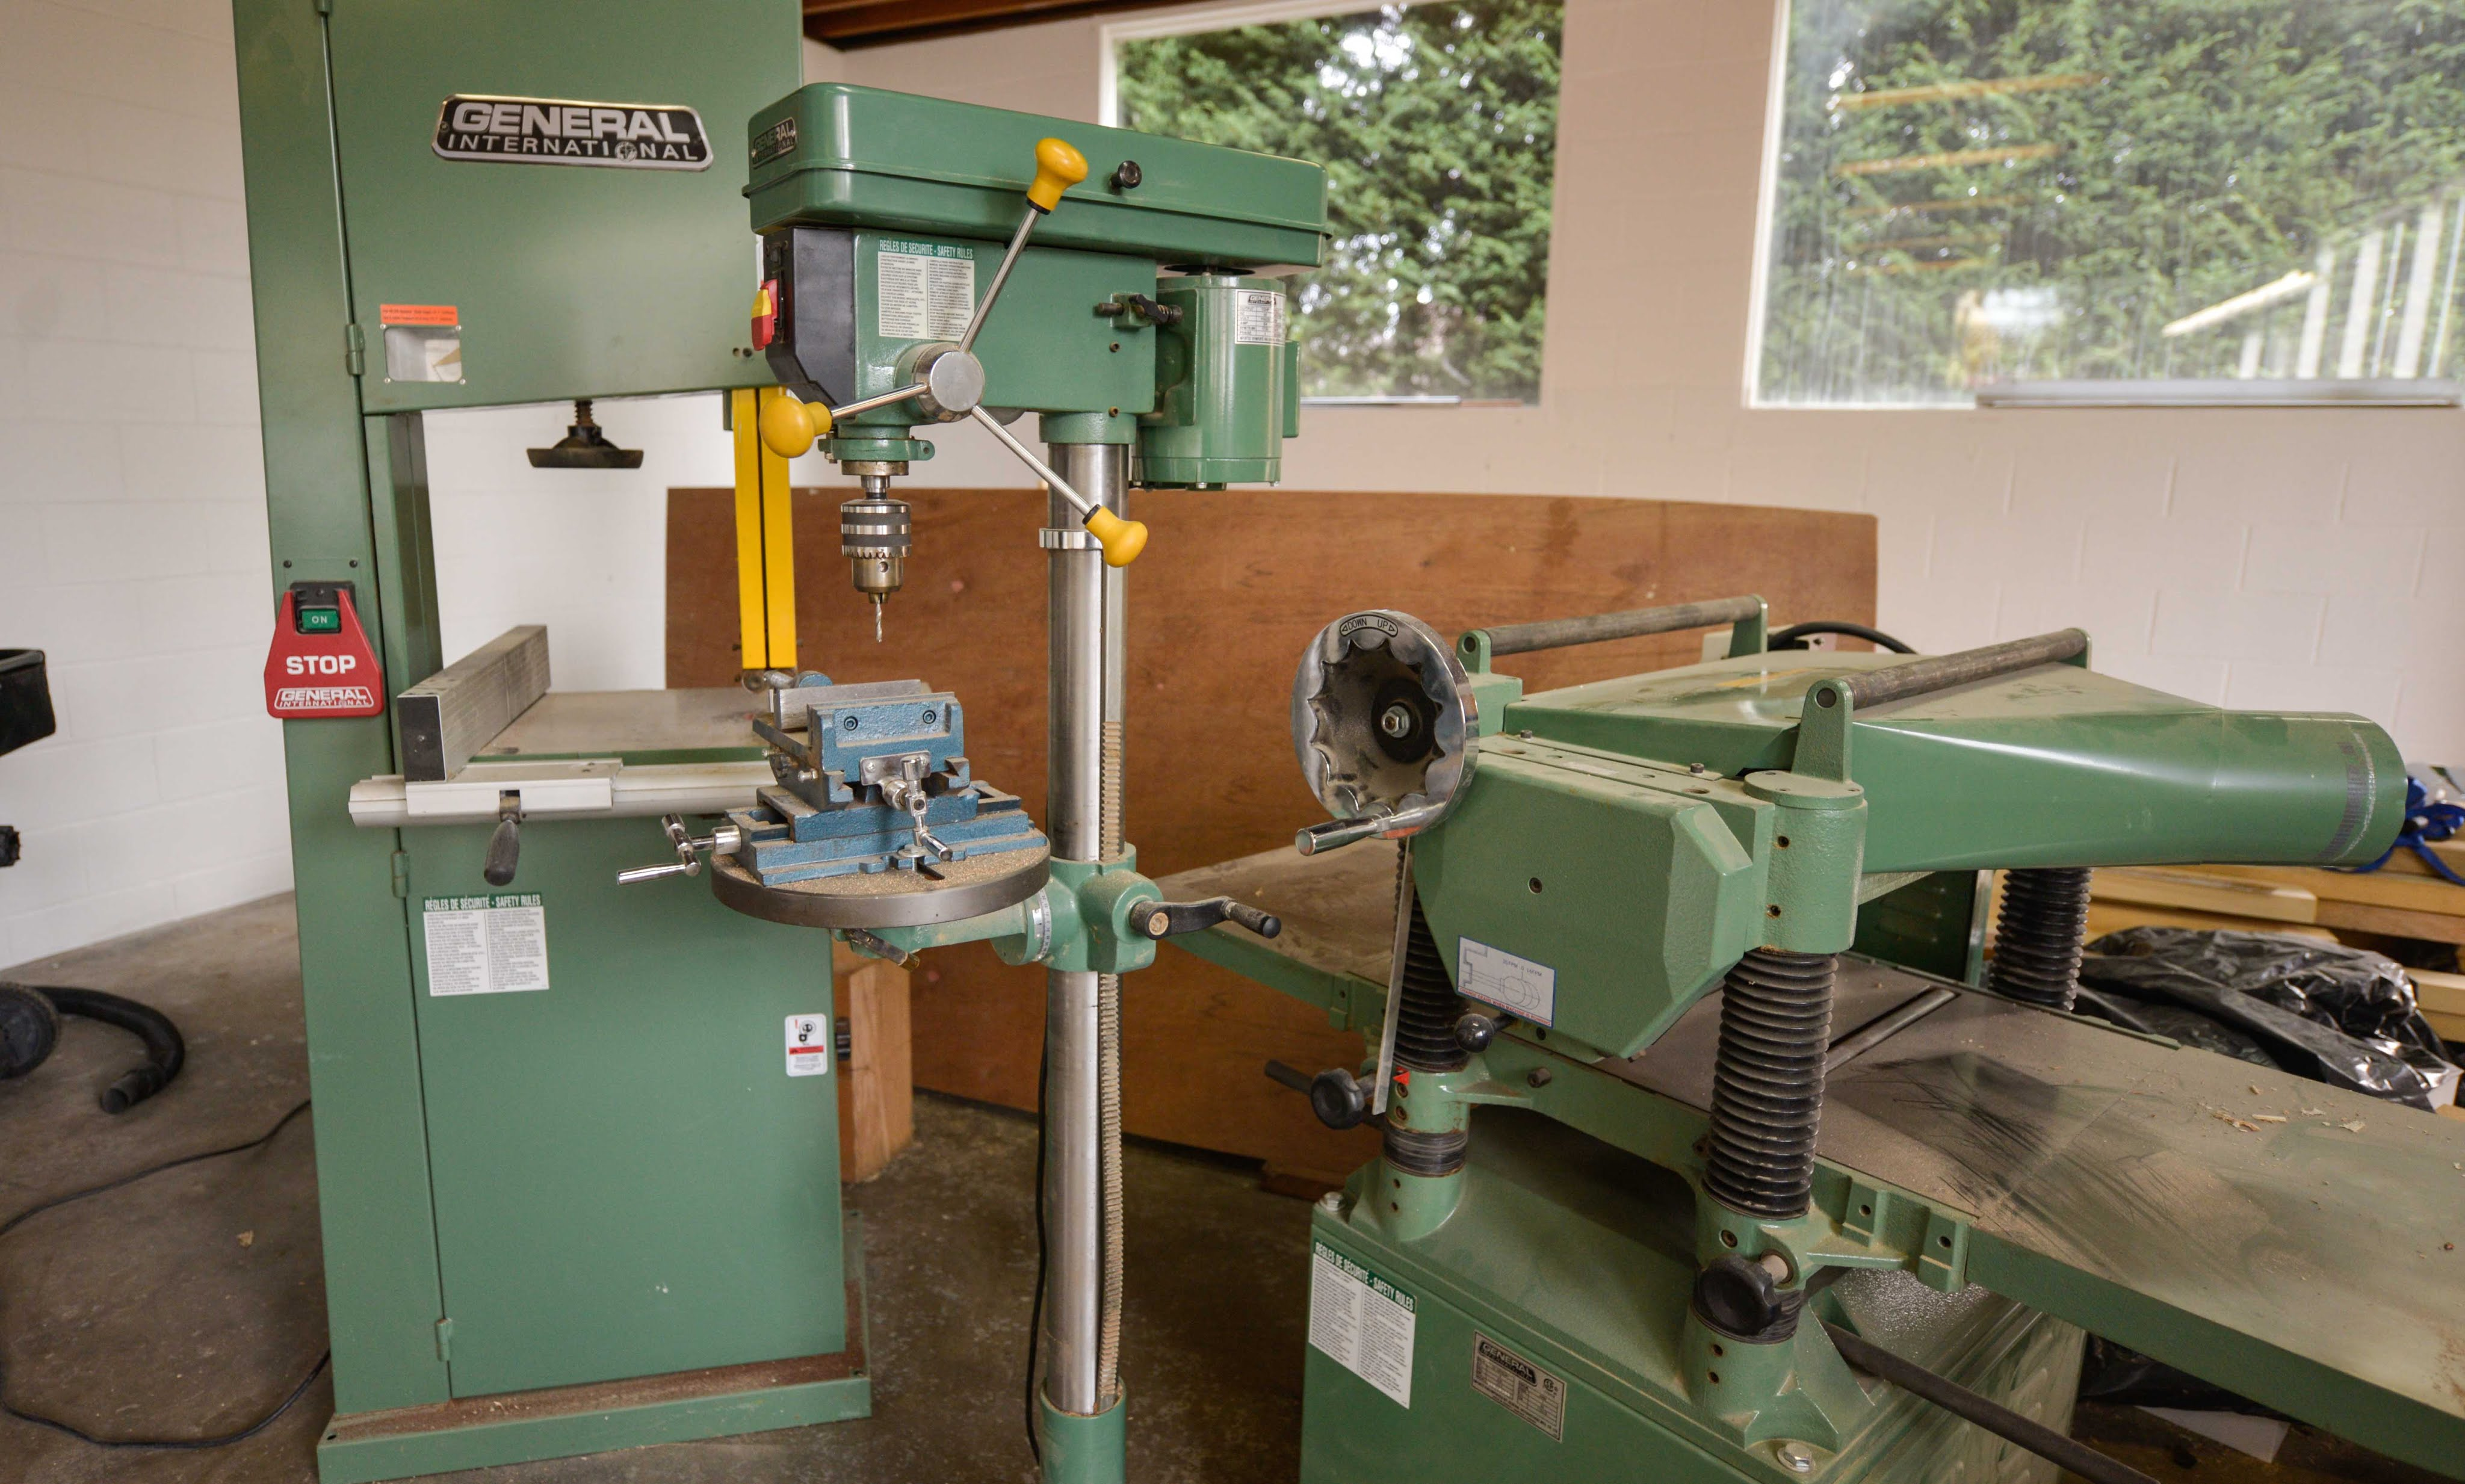 Luxury Shopsmith Mark V Home Workshop System For Sale In Reno